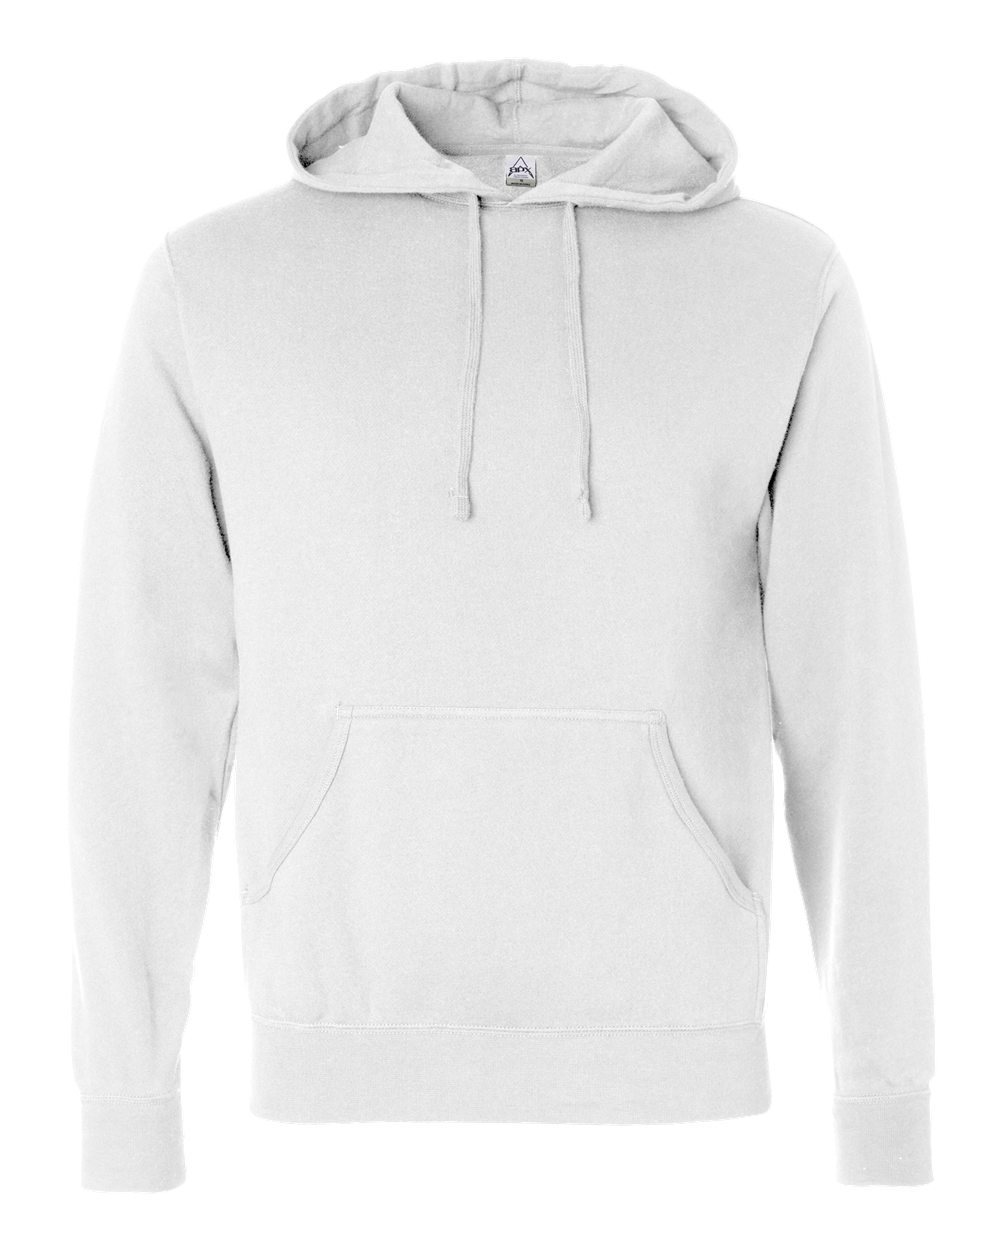 Independent_Trading_Co._AFX4000_White_Front_High.jpg